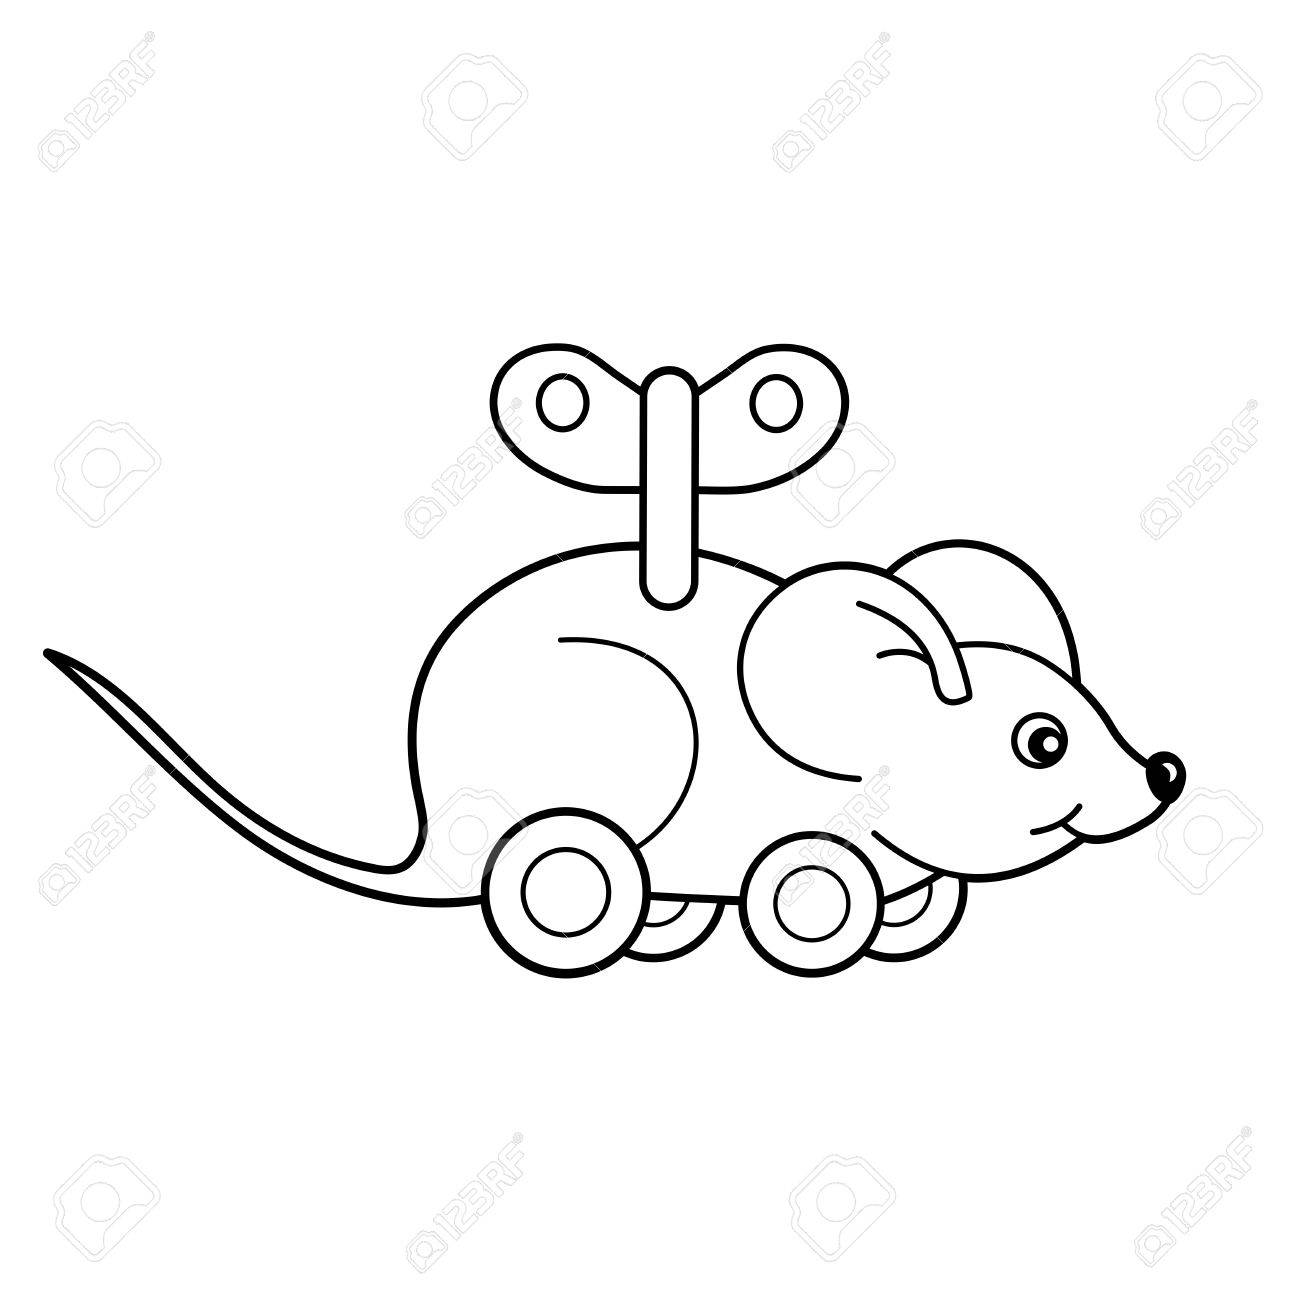 Coloring page outline of toy clockwork mouse coloring book for kids stock vector 67804679